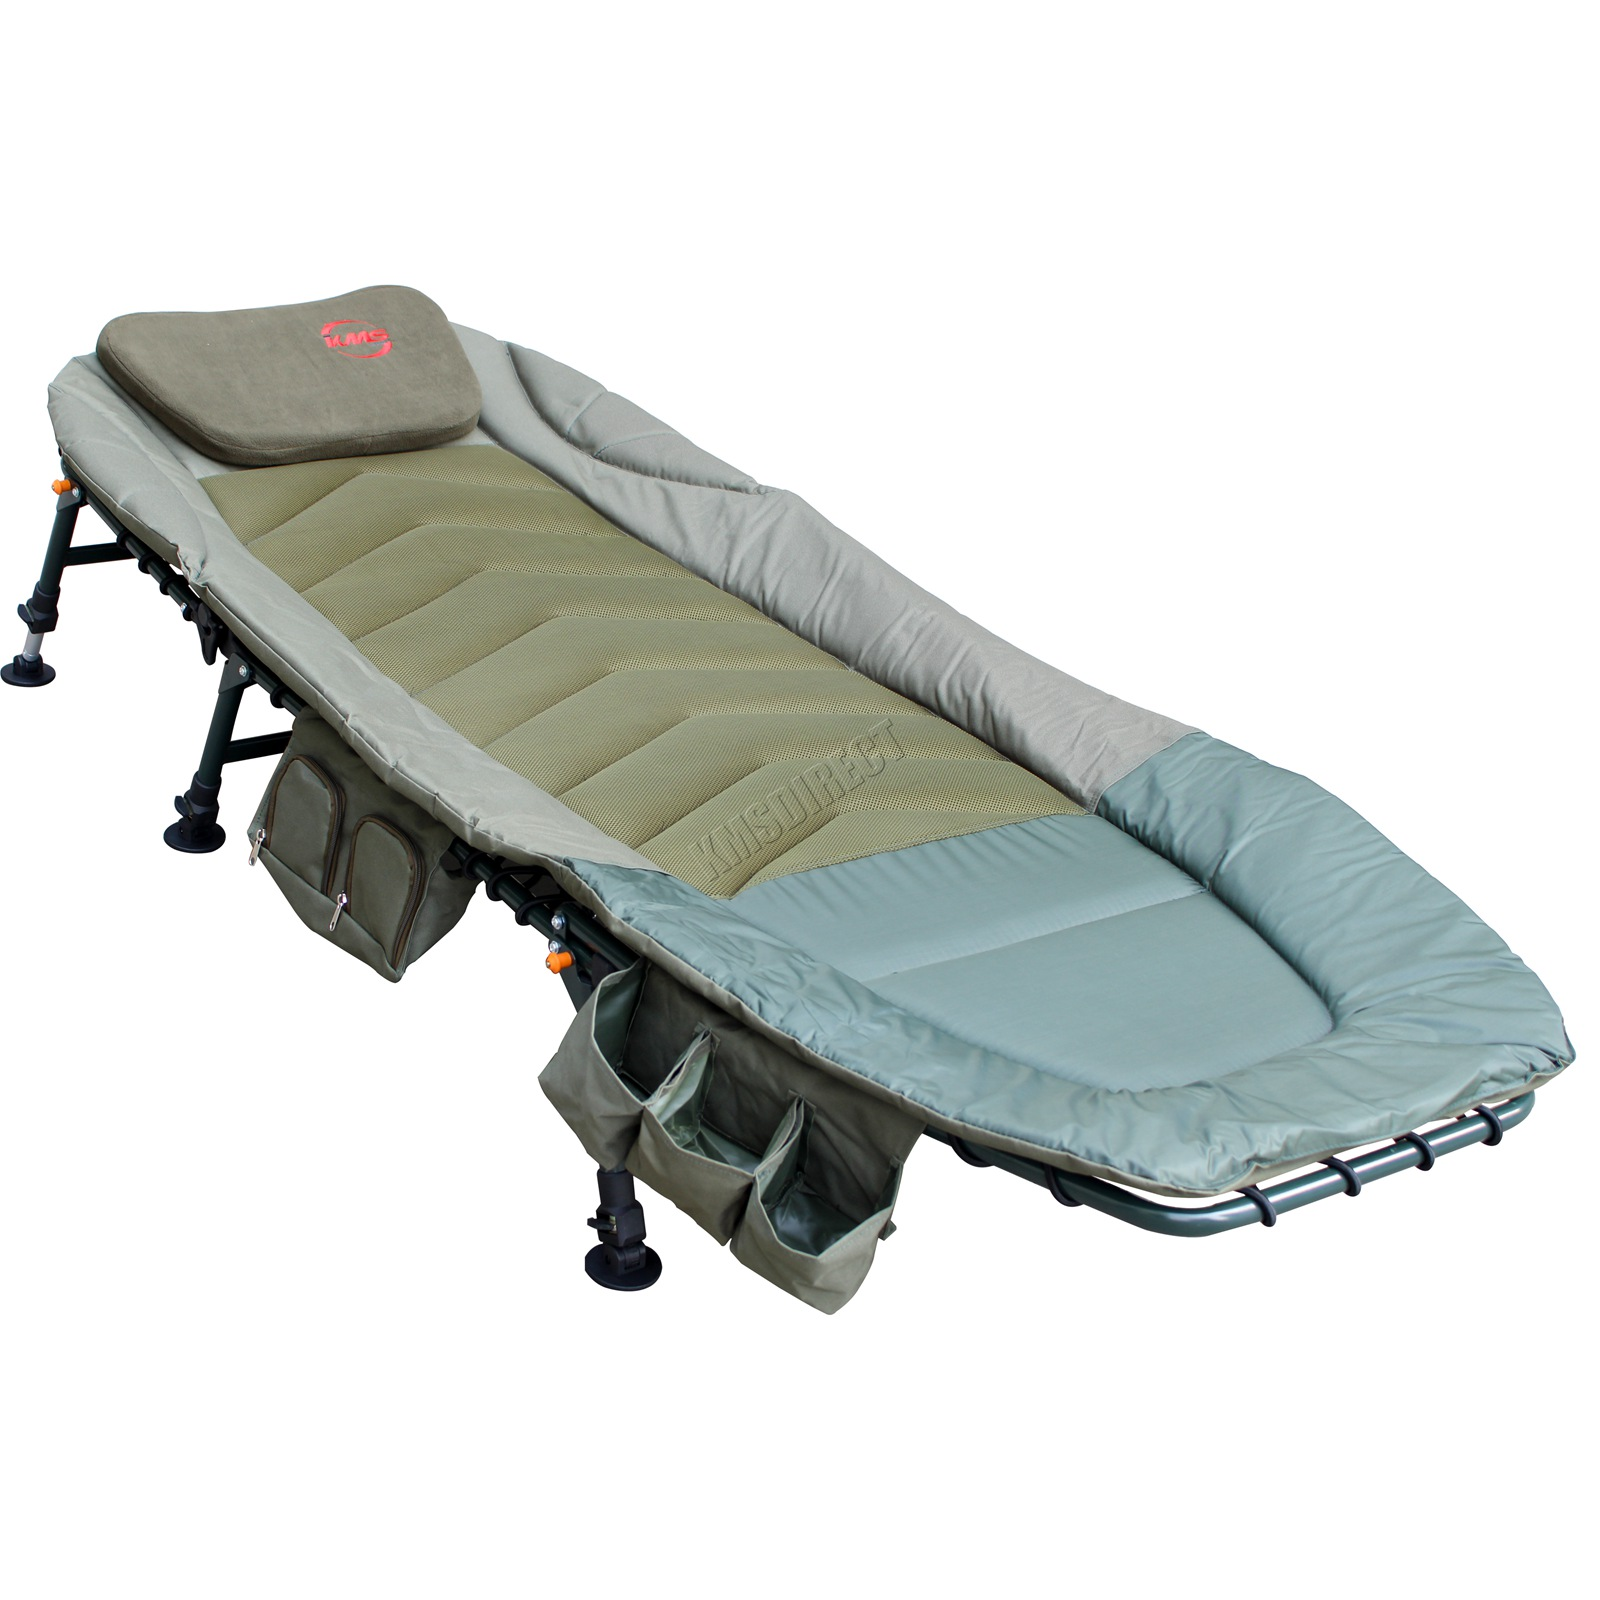 fishing bed chair used beach layout chairs bedchair camping 6 adjustable legs tool